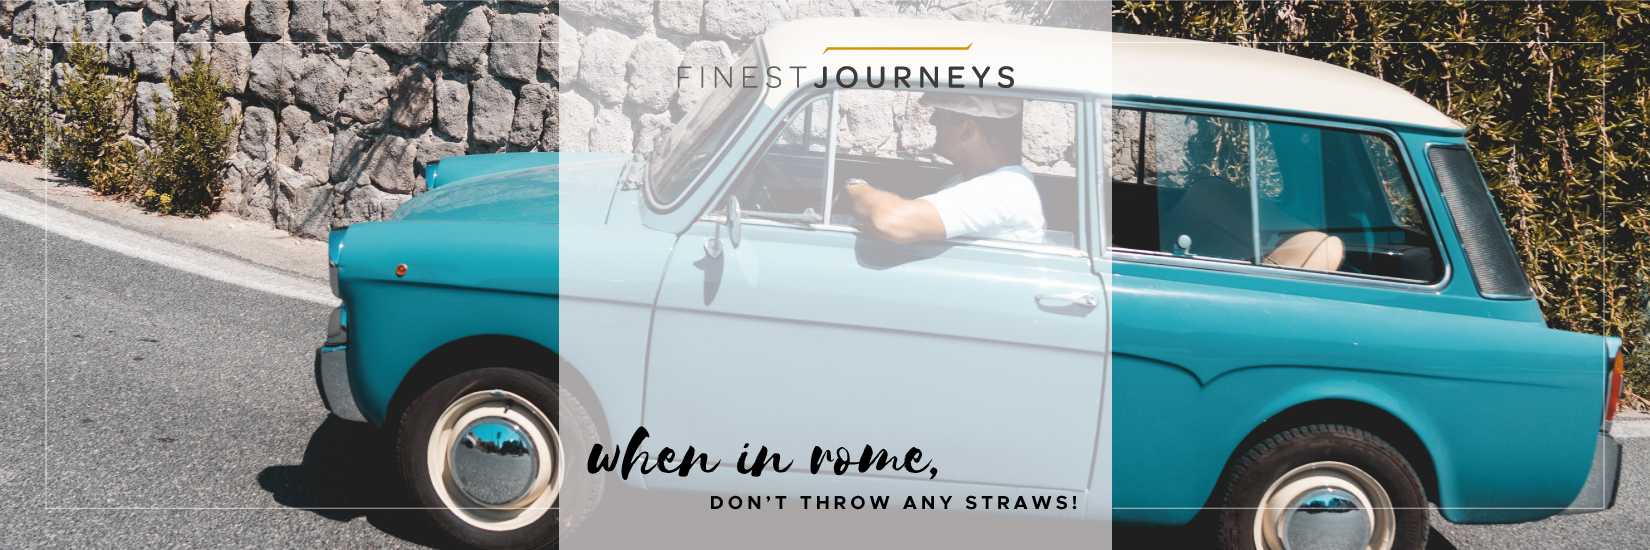 IMG : When in Rome, Don't Throw any Straws!